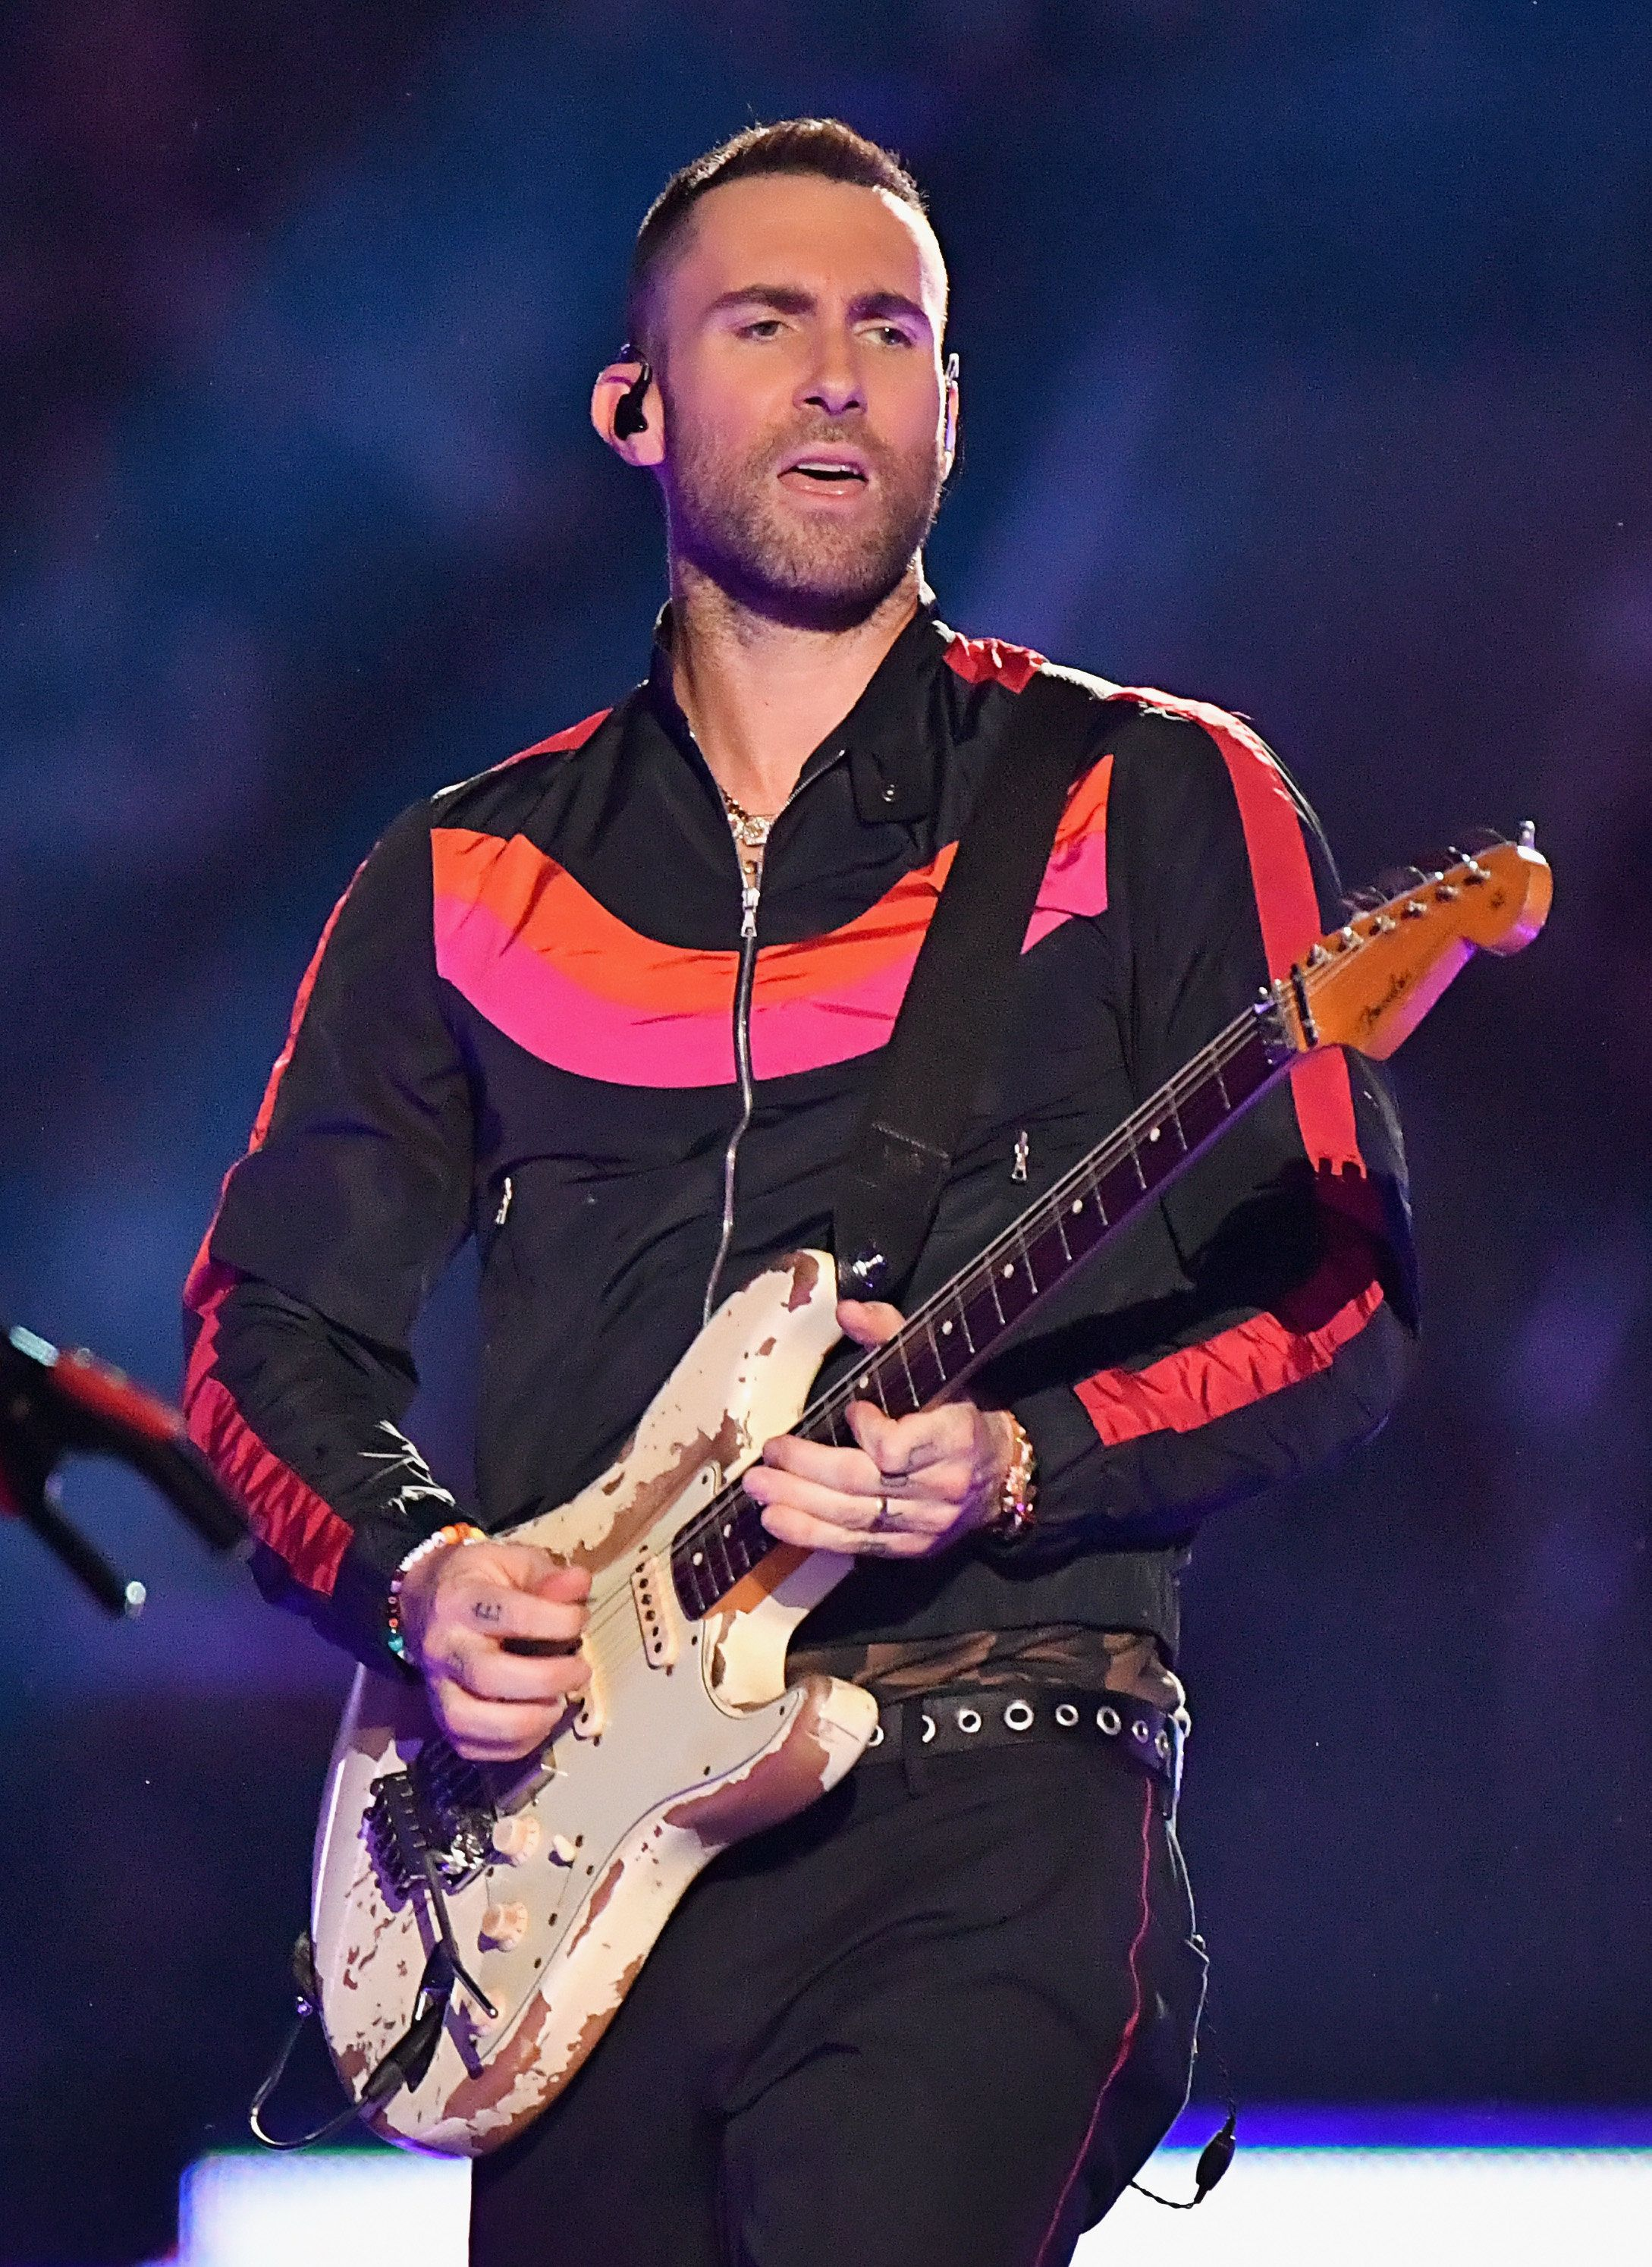 ATLANTA, GA - FEBRUARY 03:  Adam Levine of Maroon 5 performs during the Pepsi Super Bowl LIII Halftime Show at Mercedes-Benz Stadium on February 3, 2019 in Atlanta, Georgia.  (Photo by Jeff Kravitz/FilmMagic)